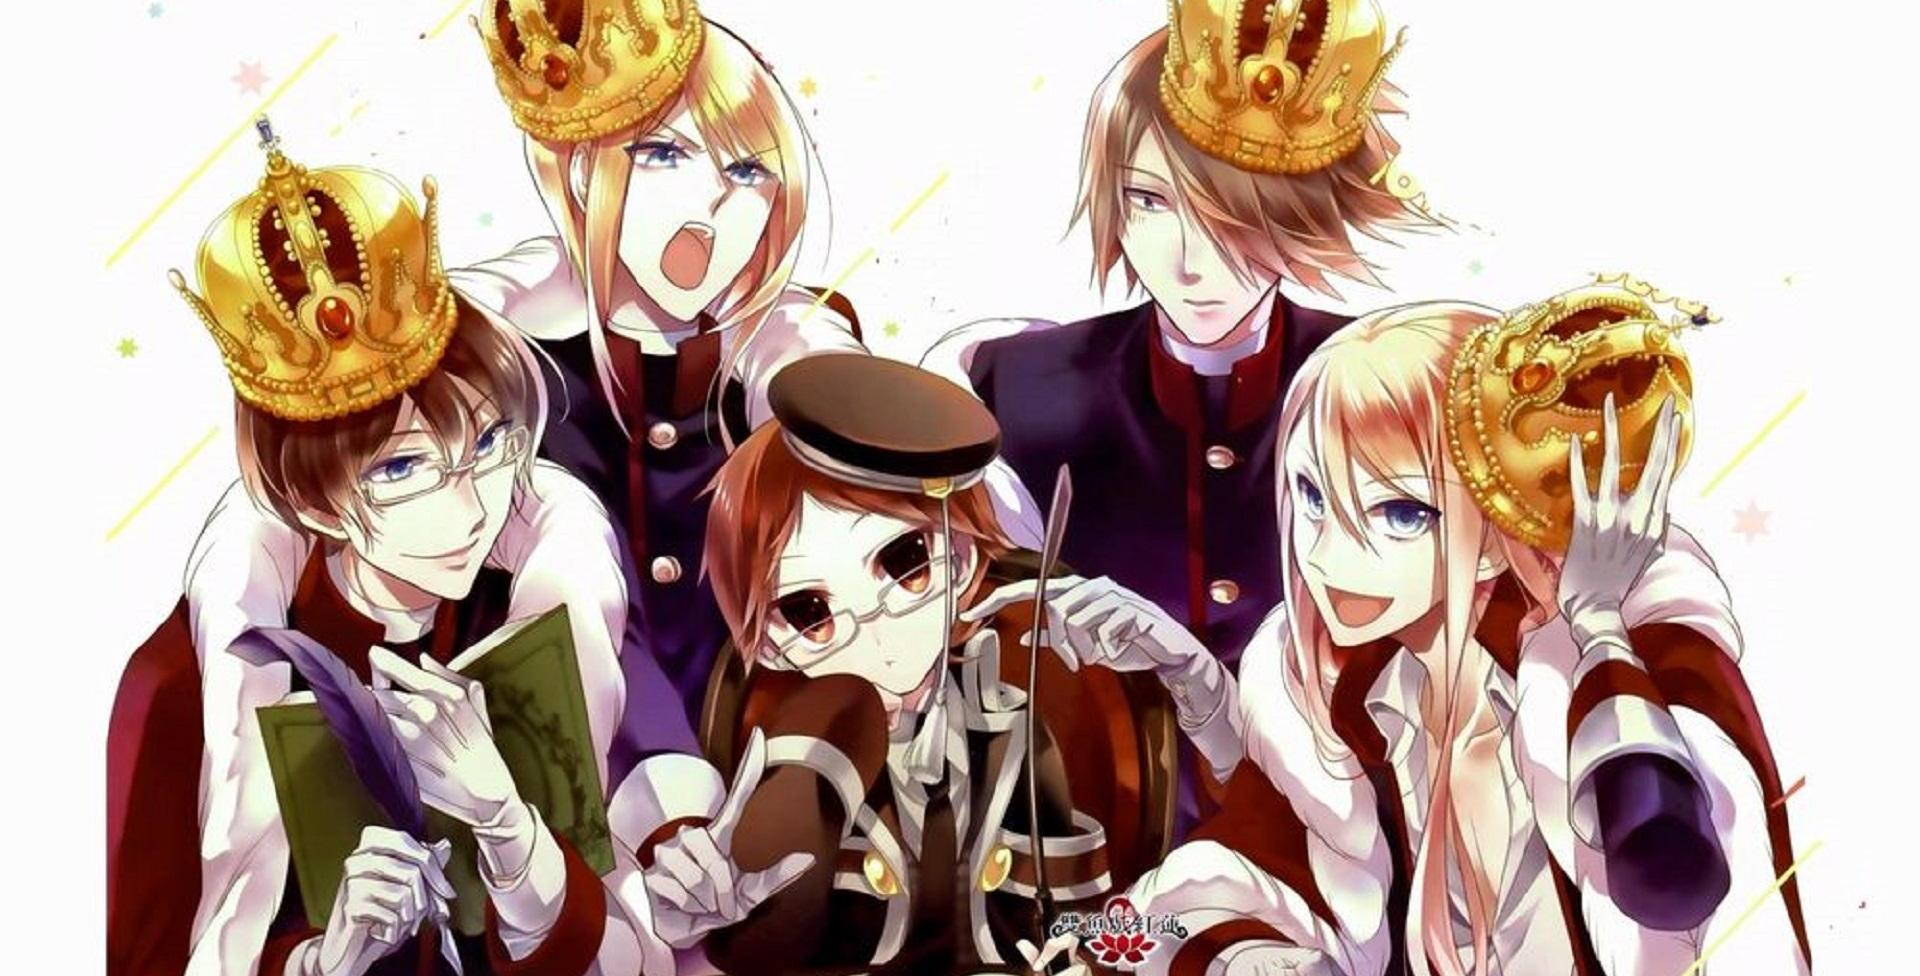 Xem phim Oushitsu Kyoushi Heine Movie - The Royal Tutor Movie, Oushitsu Kyoushi Haine Movie Vietsub